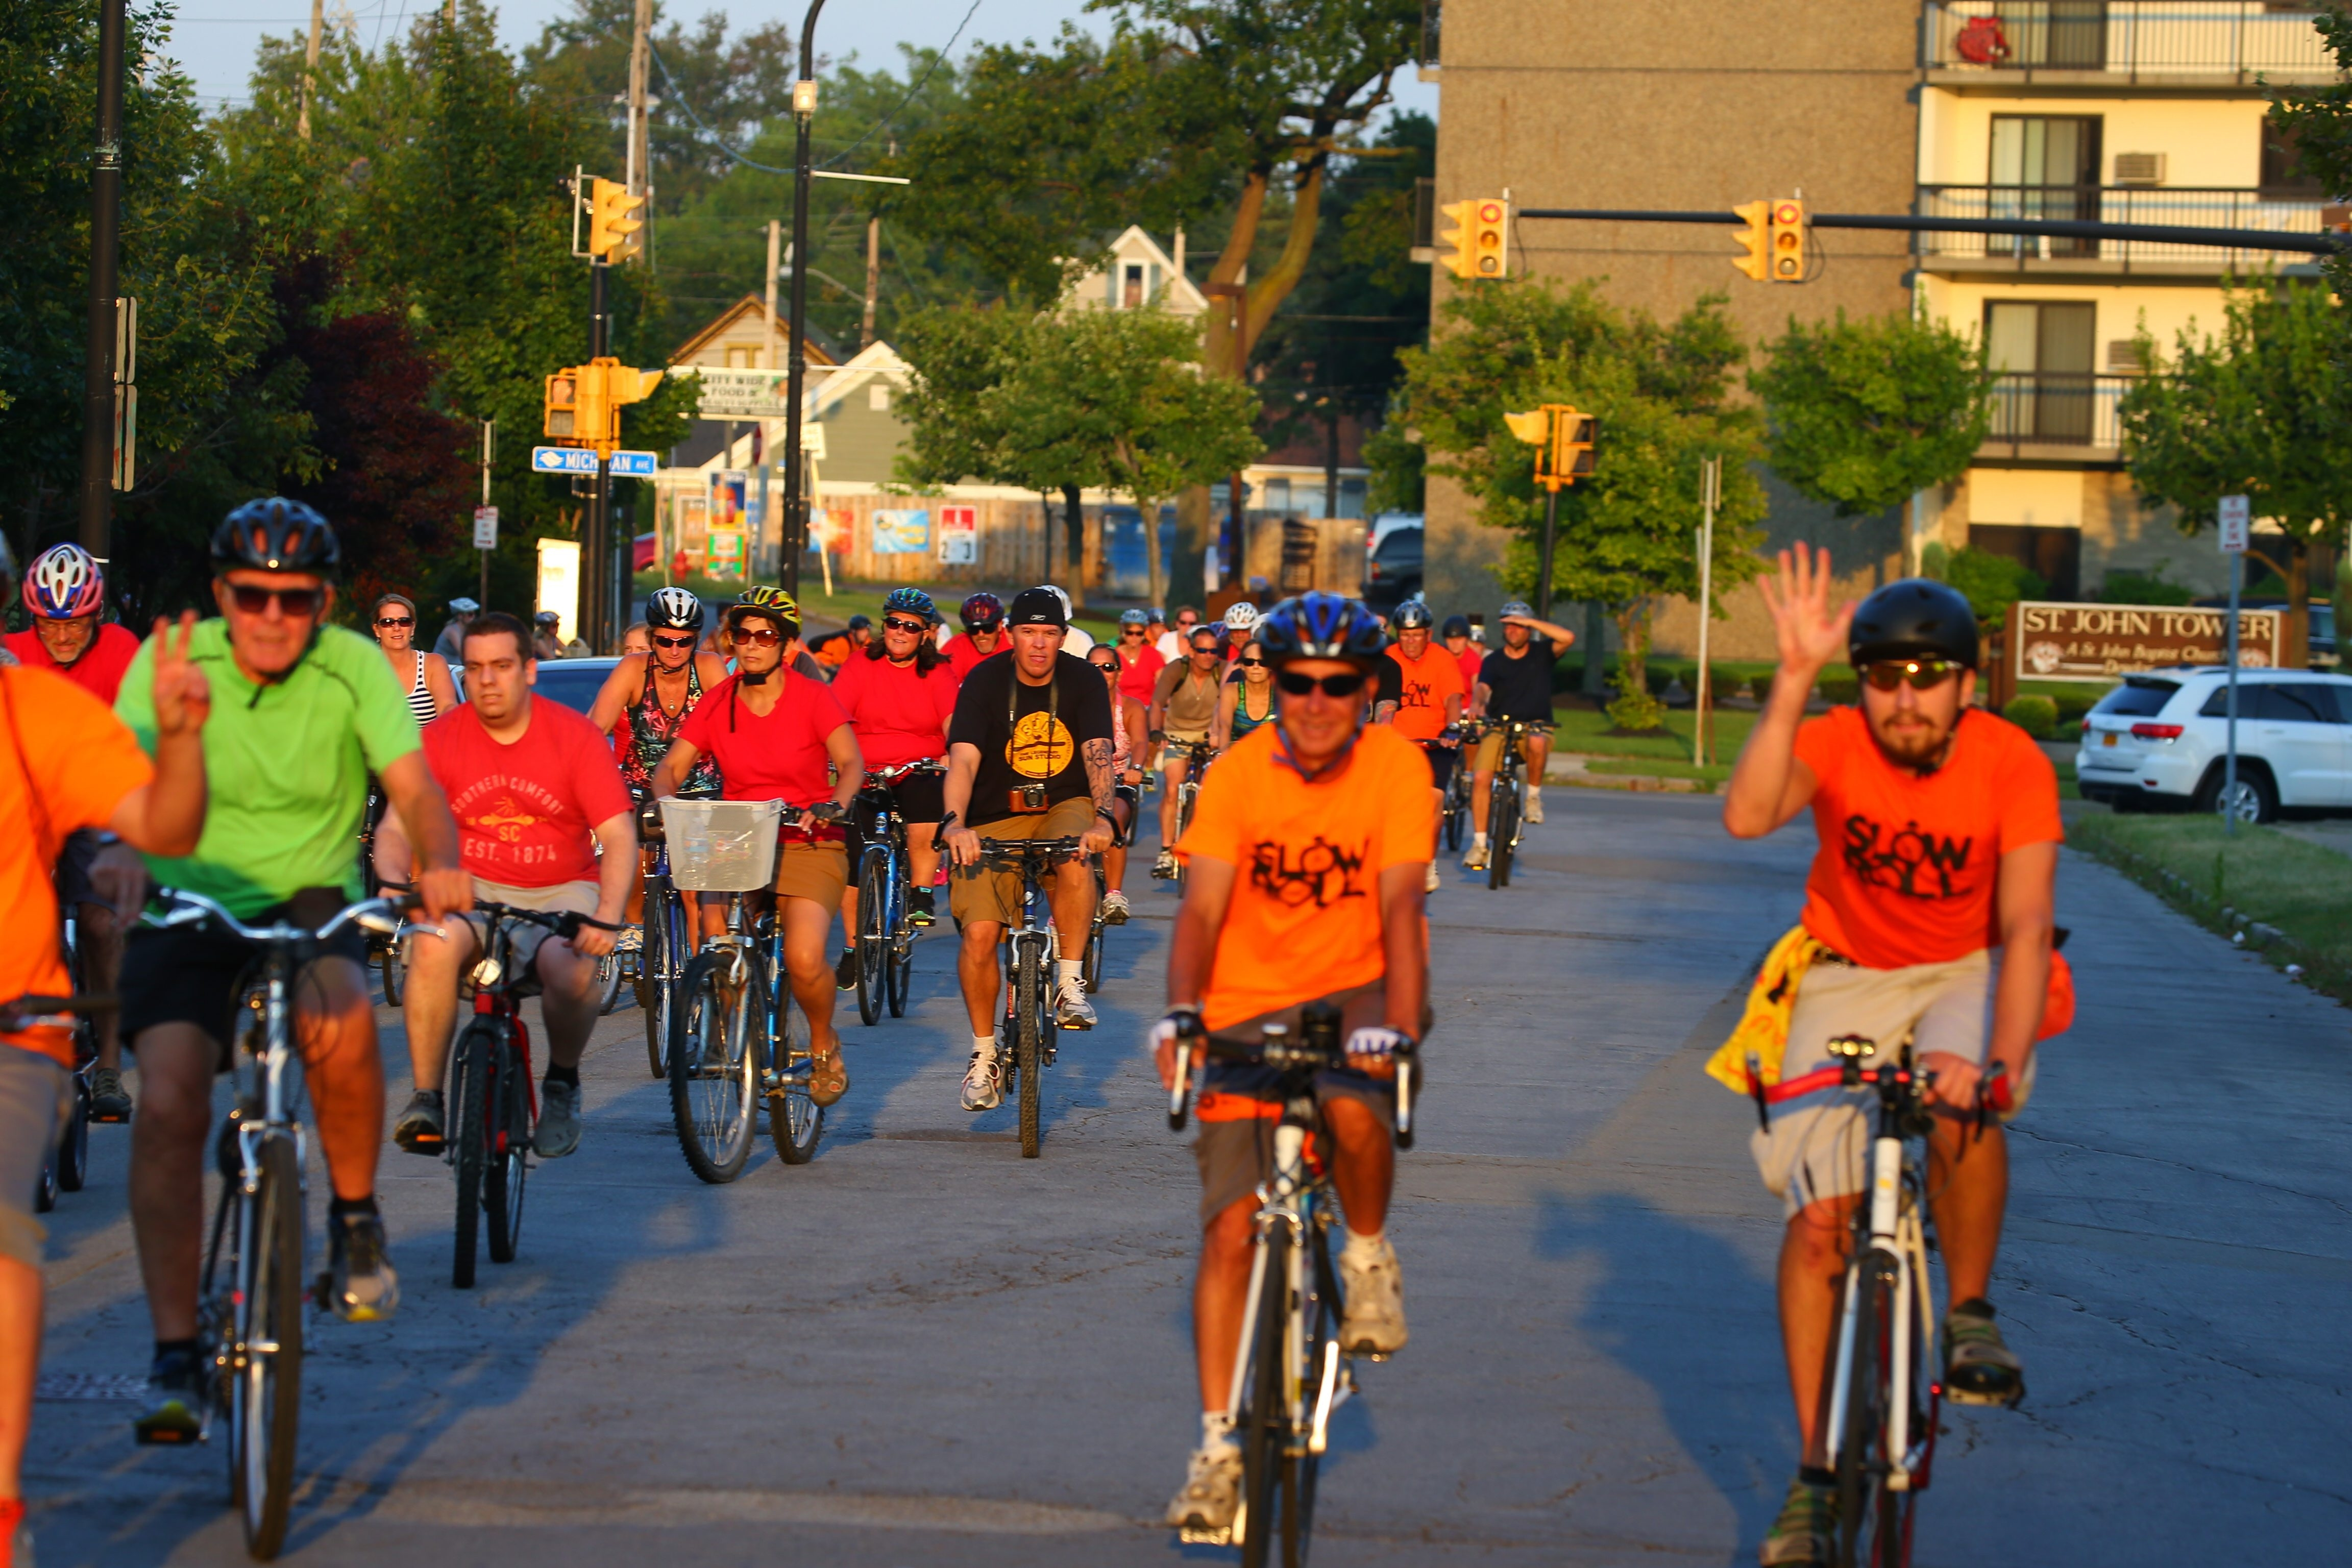 """Slow Roll Buffalo bicyclists ride down Virginia Street past Roswell Park Cancer Institute  as they move through city streets and neighborhoods in Buffalo on Aug. 17, 2015. The Slow Roll event kicks off May 8 with a """"Parkway Revival Ride.""""  (John Hickey/Buffalo News)"""